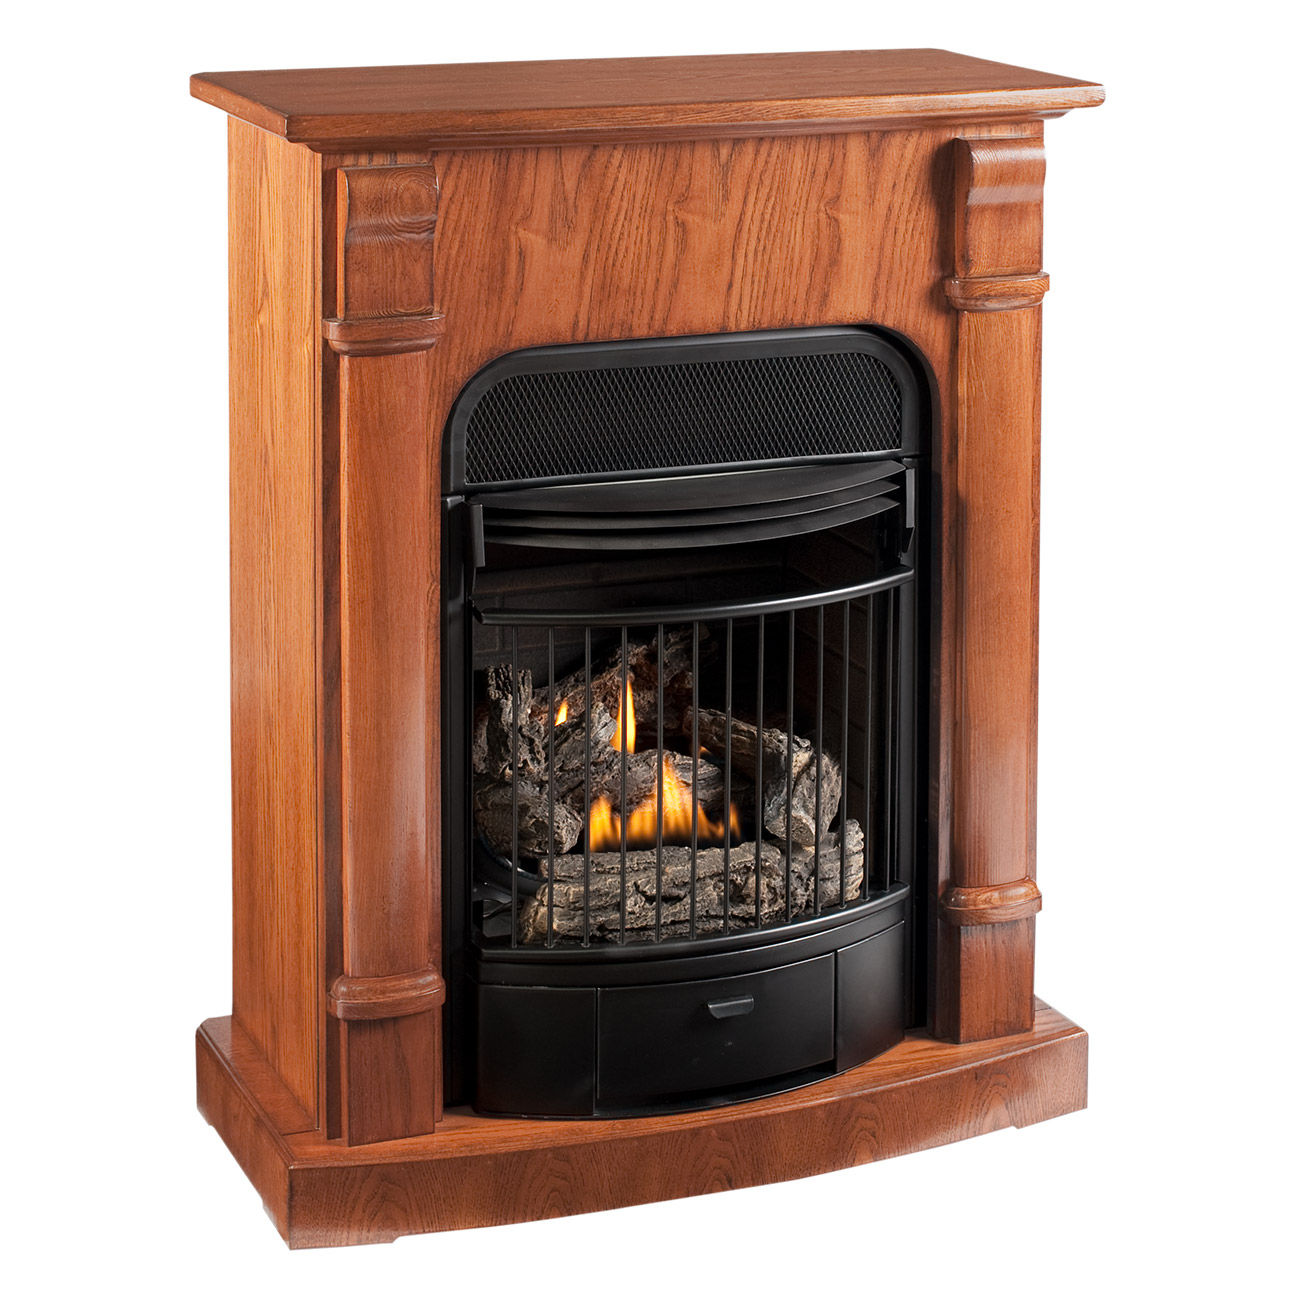 ProCom Heating Ventless Fireplace Model# EDP200T2-MO